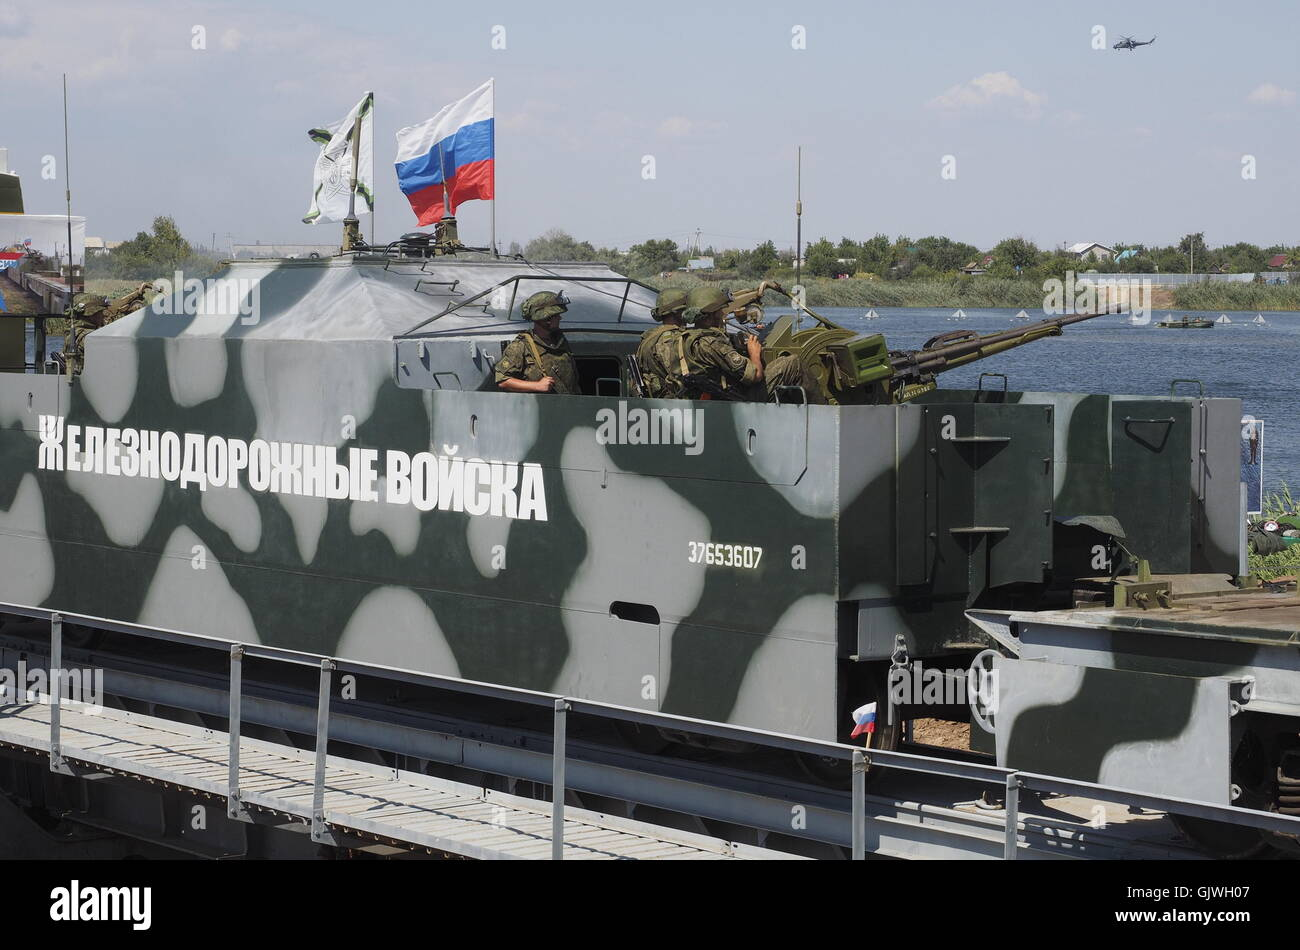 Volgograd Region, Russia. 16th Aug, 2016. An armoured train, Baikal, during a military exercise by the Russian Army's - Stock Image